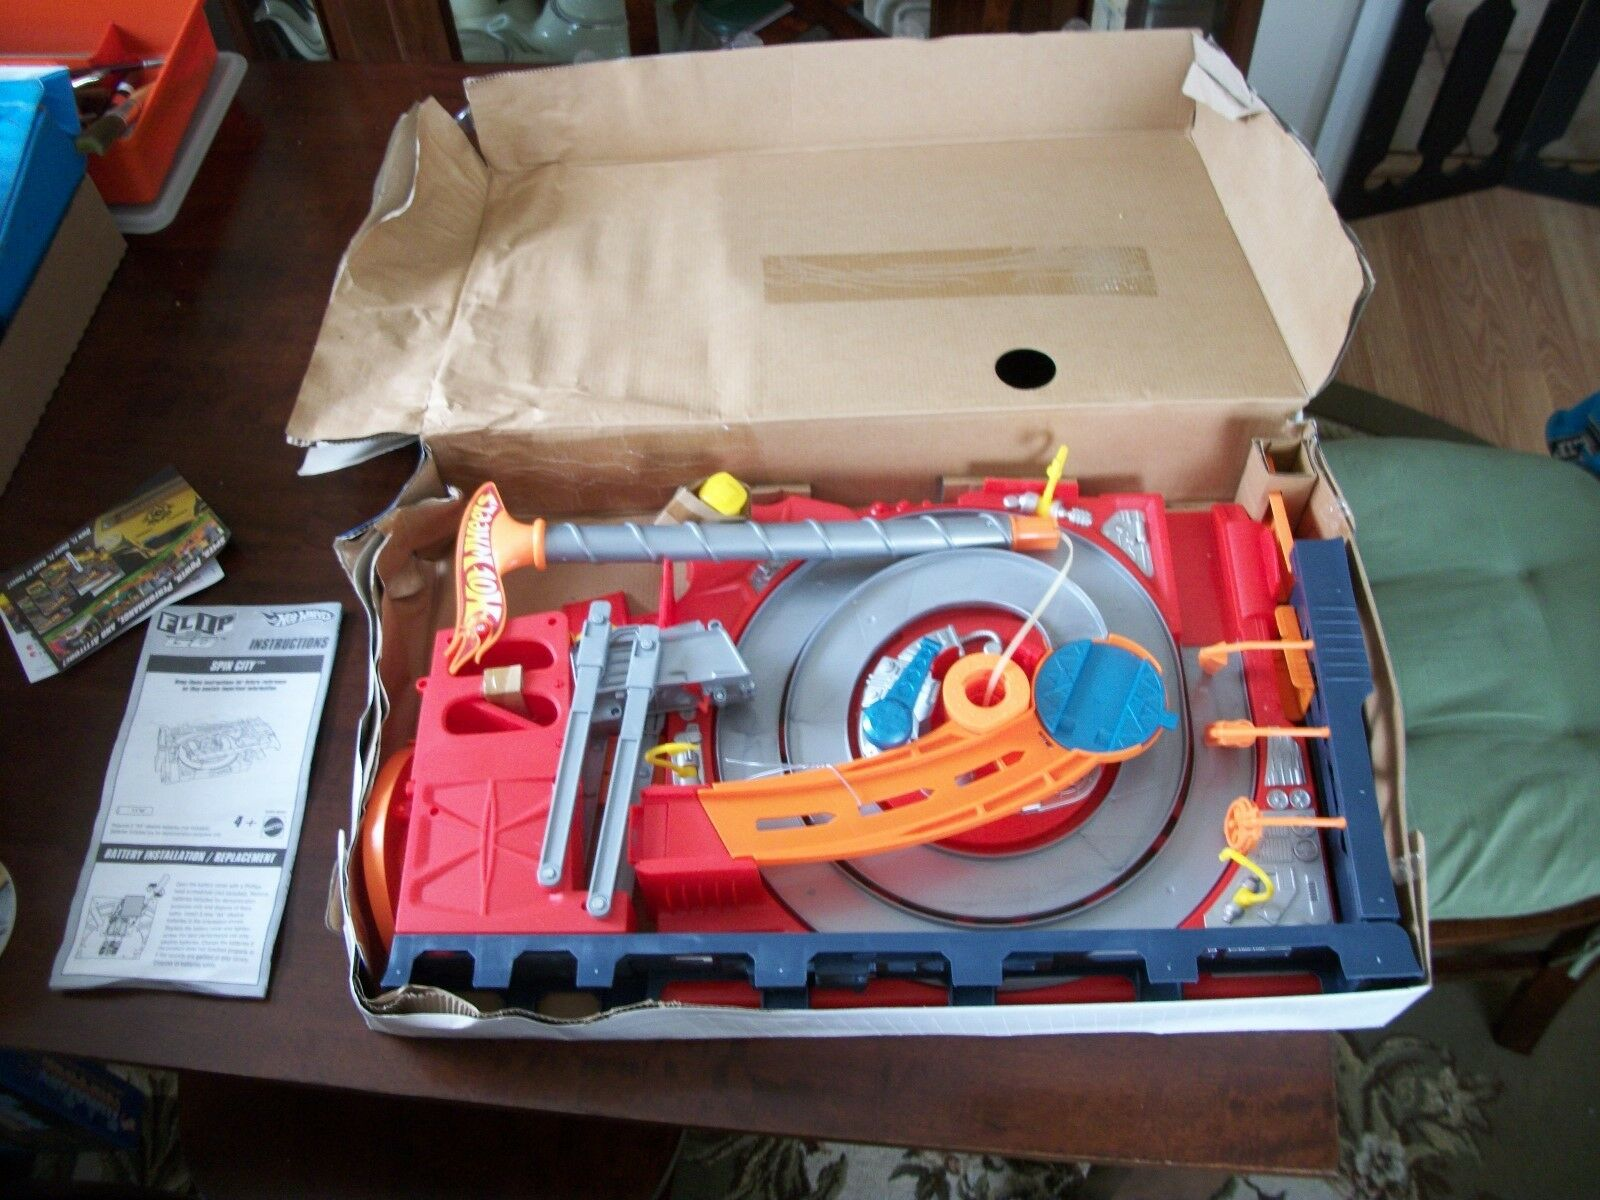 2007 HOT WHEELS SPIN CITY FLIP N GO PLAYSET COMPLETE IN OPEN BOX NEVER USED